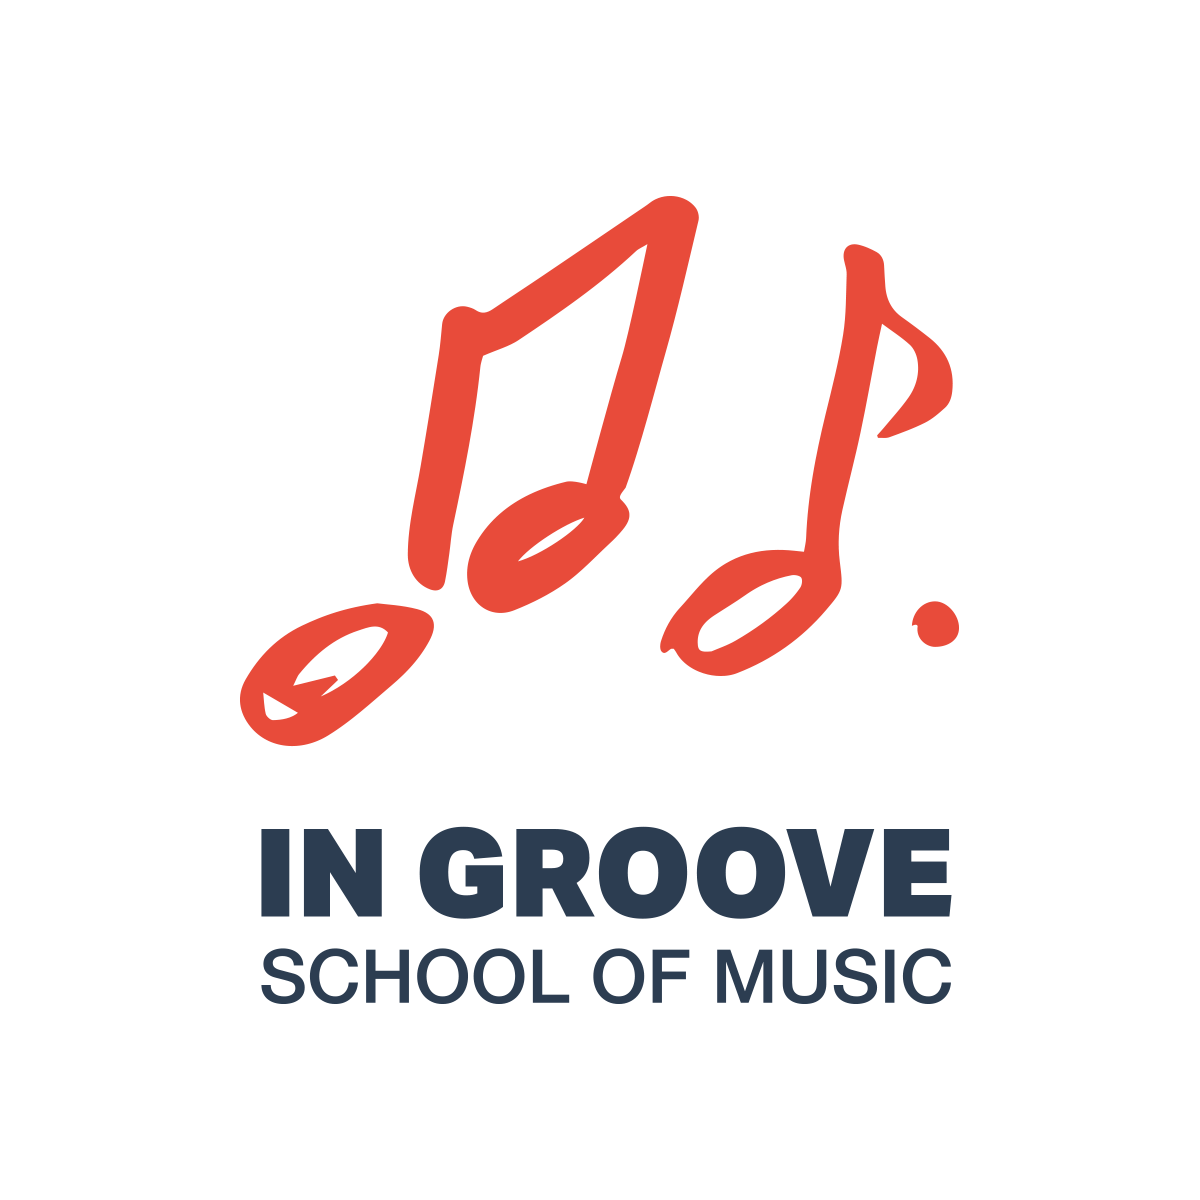 IN GROOVE